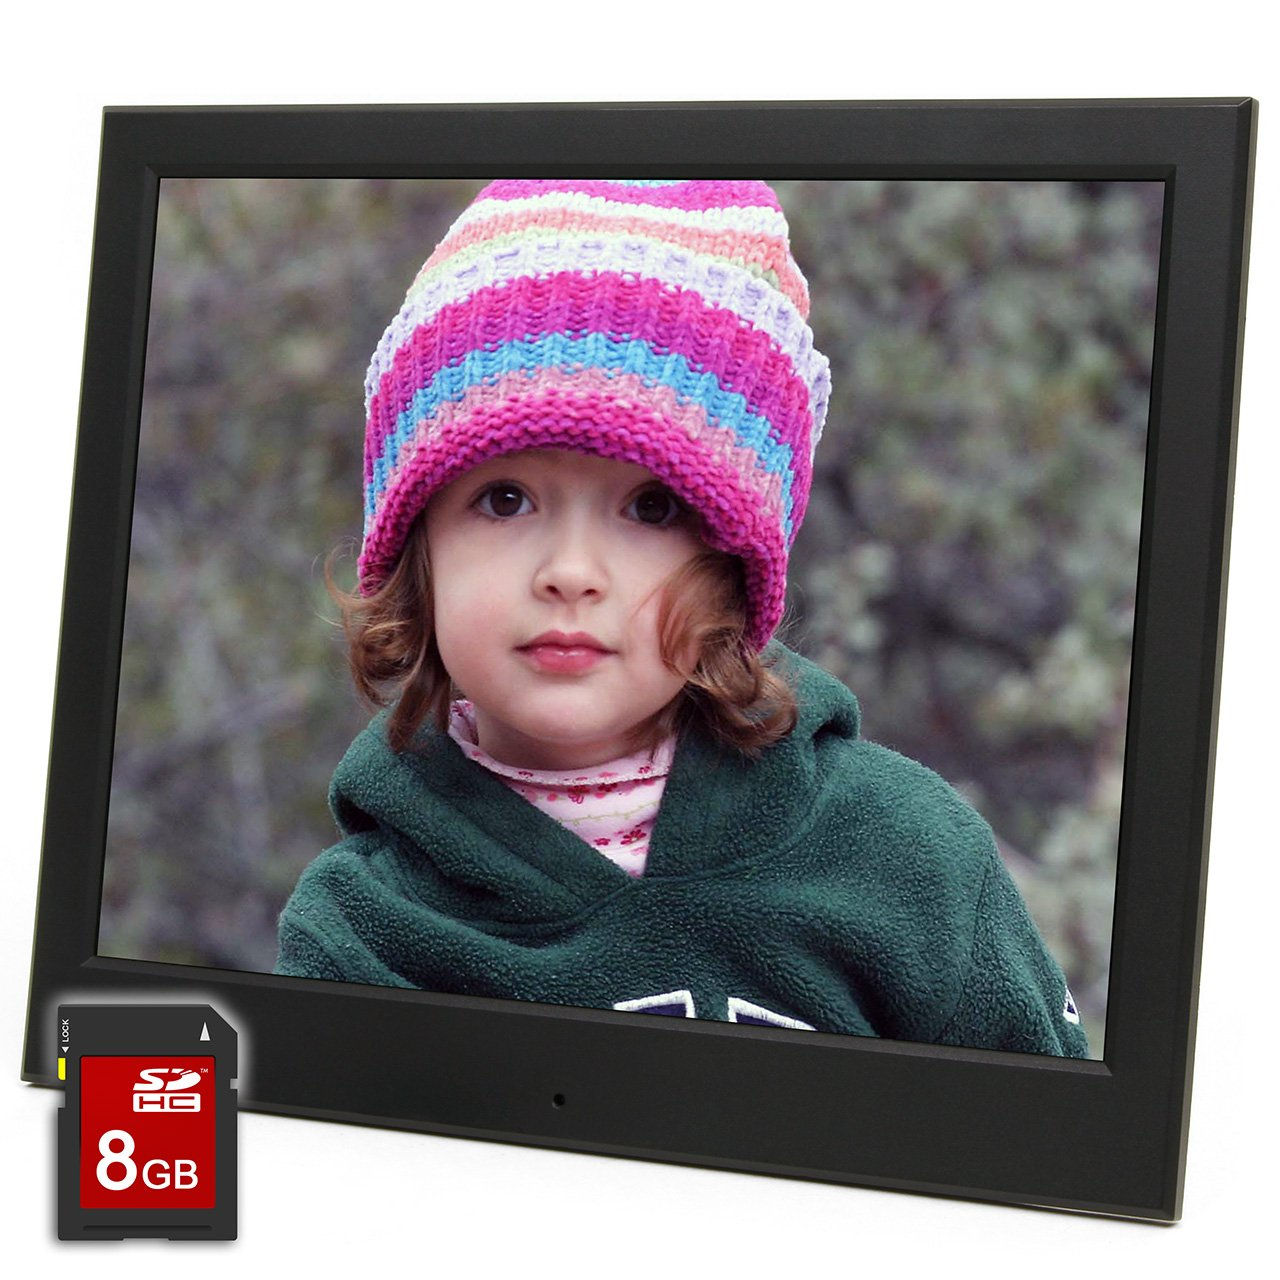 Amazon.com : Micca 10-Inch Natural View 1024x768 High Resolution ...